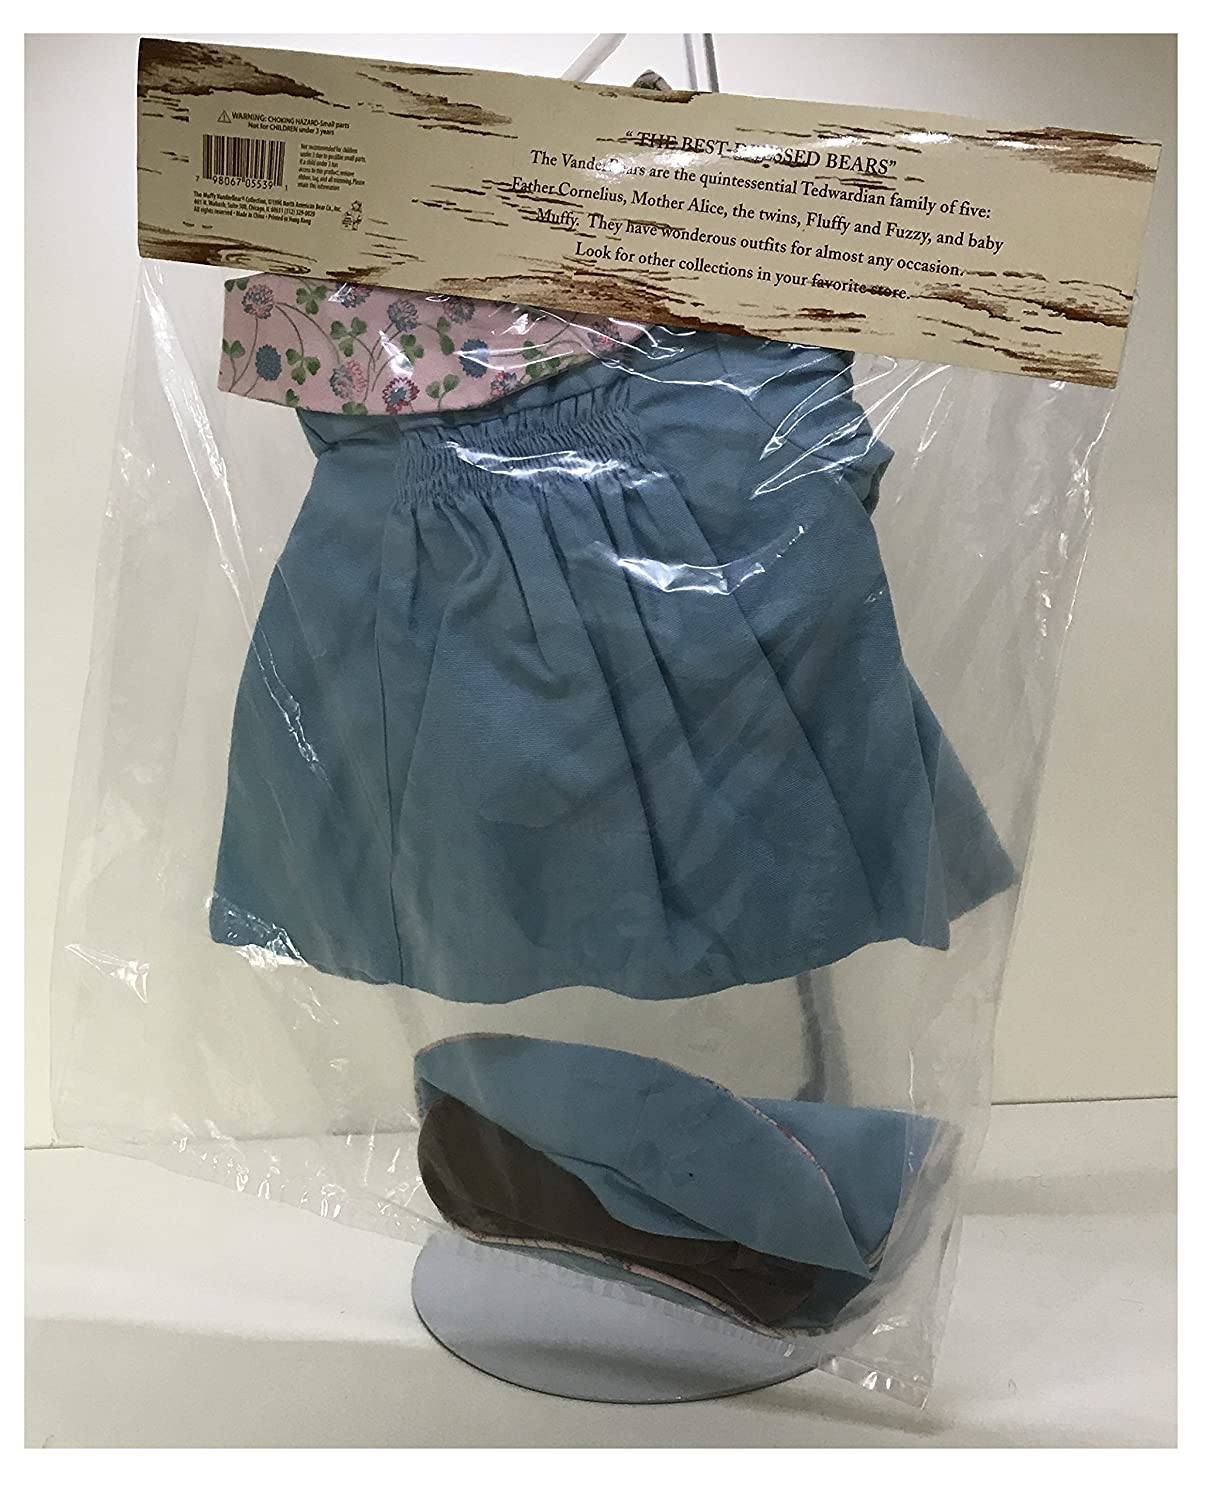 Amazon.com: Vanderbear Wear Alice Take A Hike Outfit Only 5539: Toys & Games